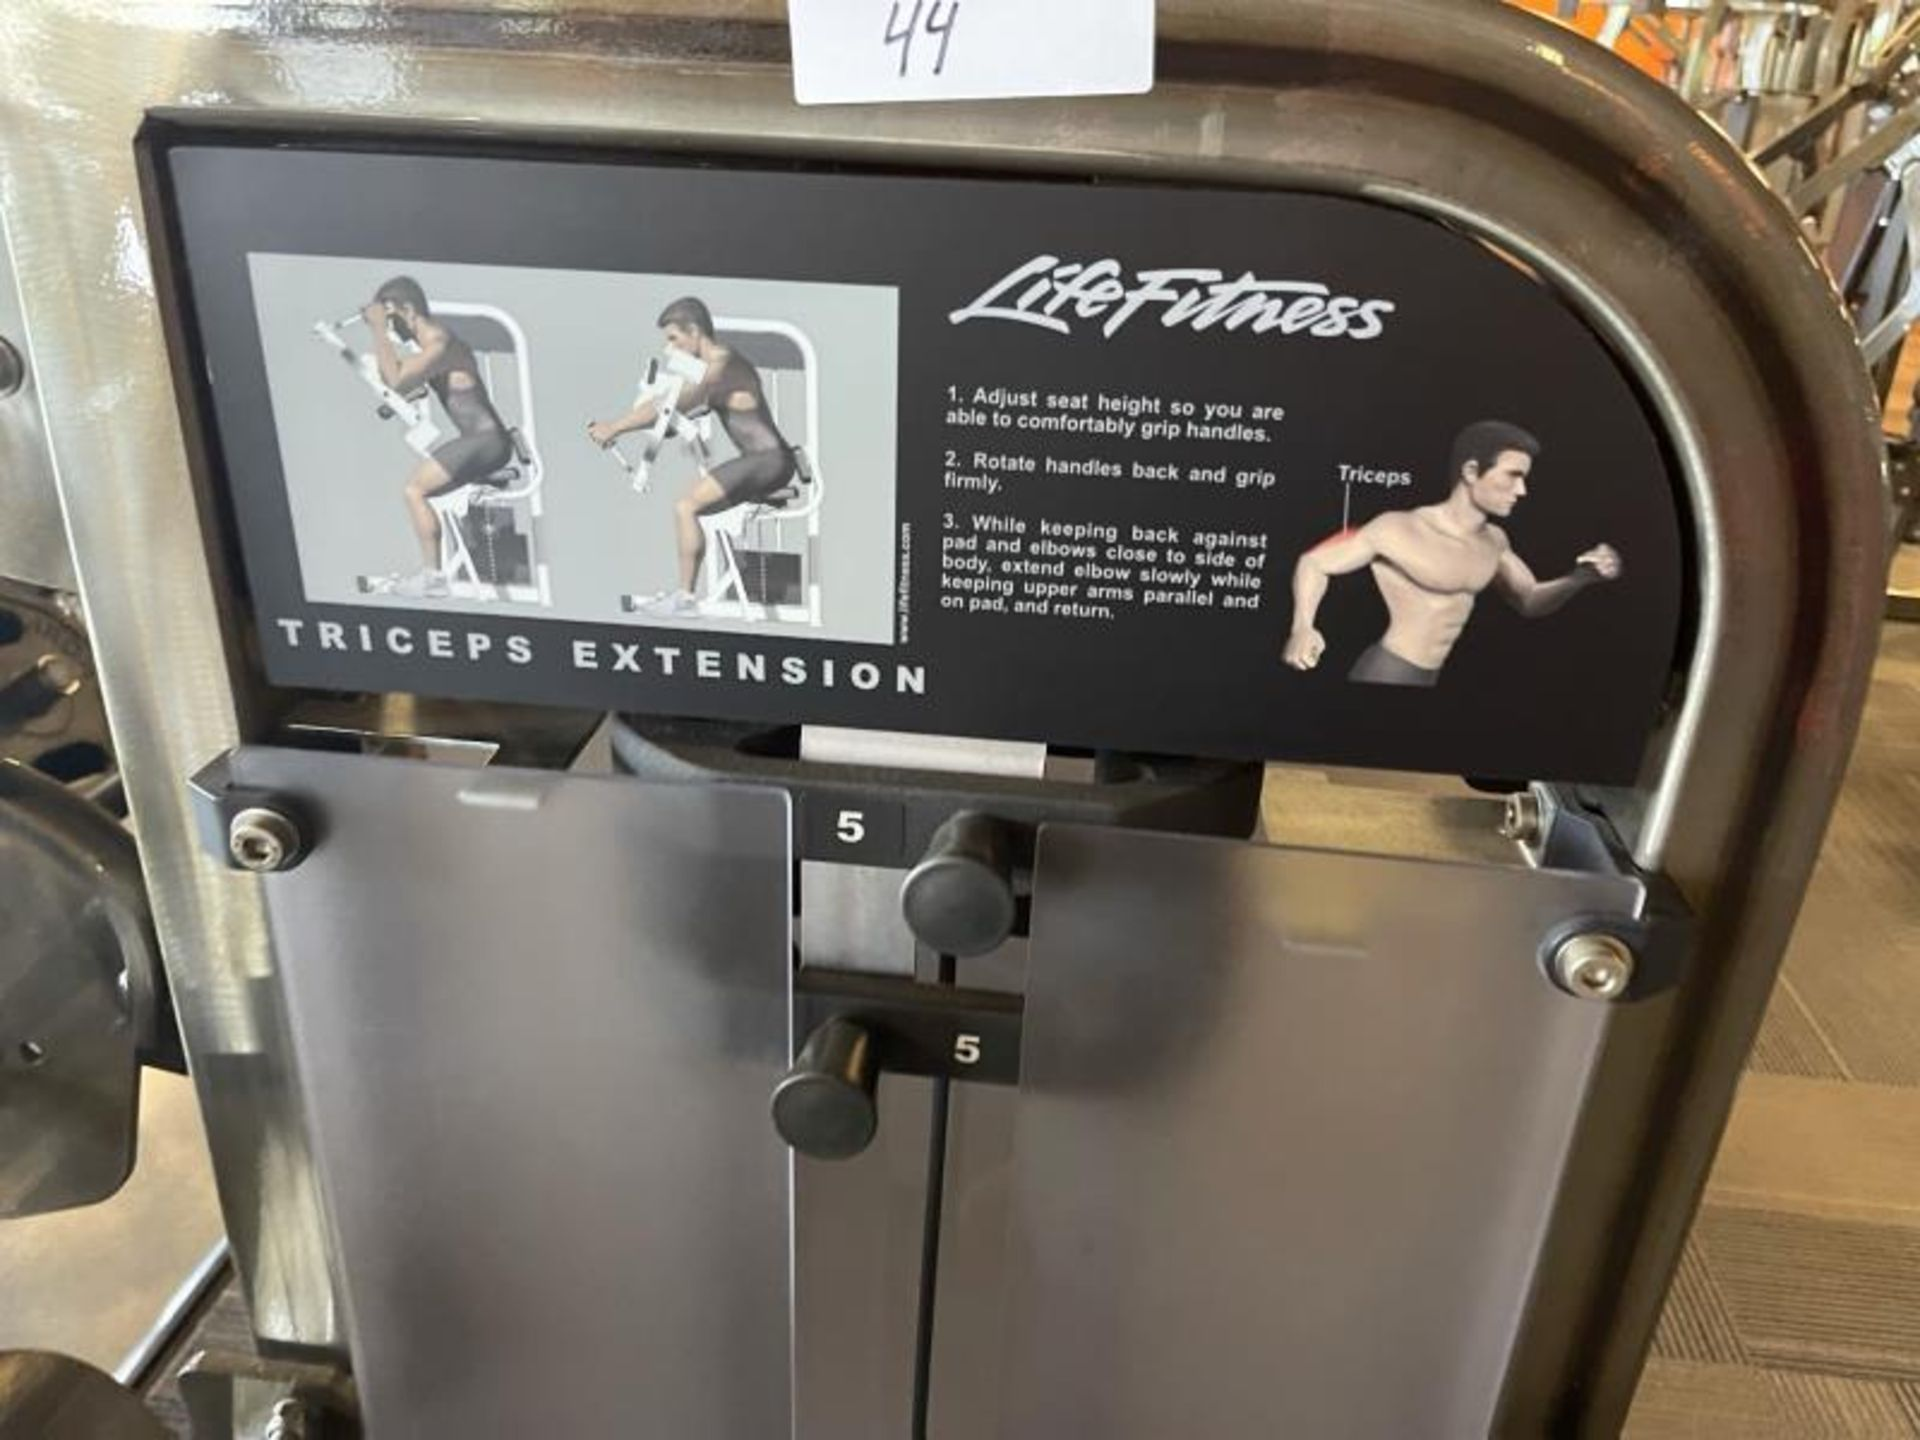 Life Fitness Biceps Curl Extension M: PSTESE - Image 4 of 7